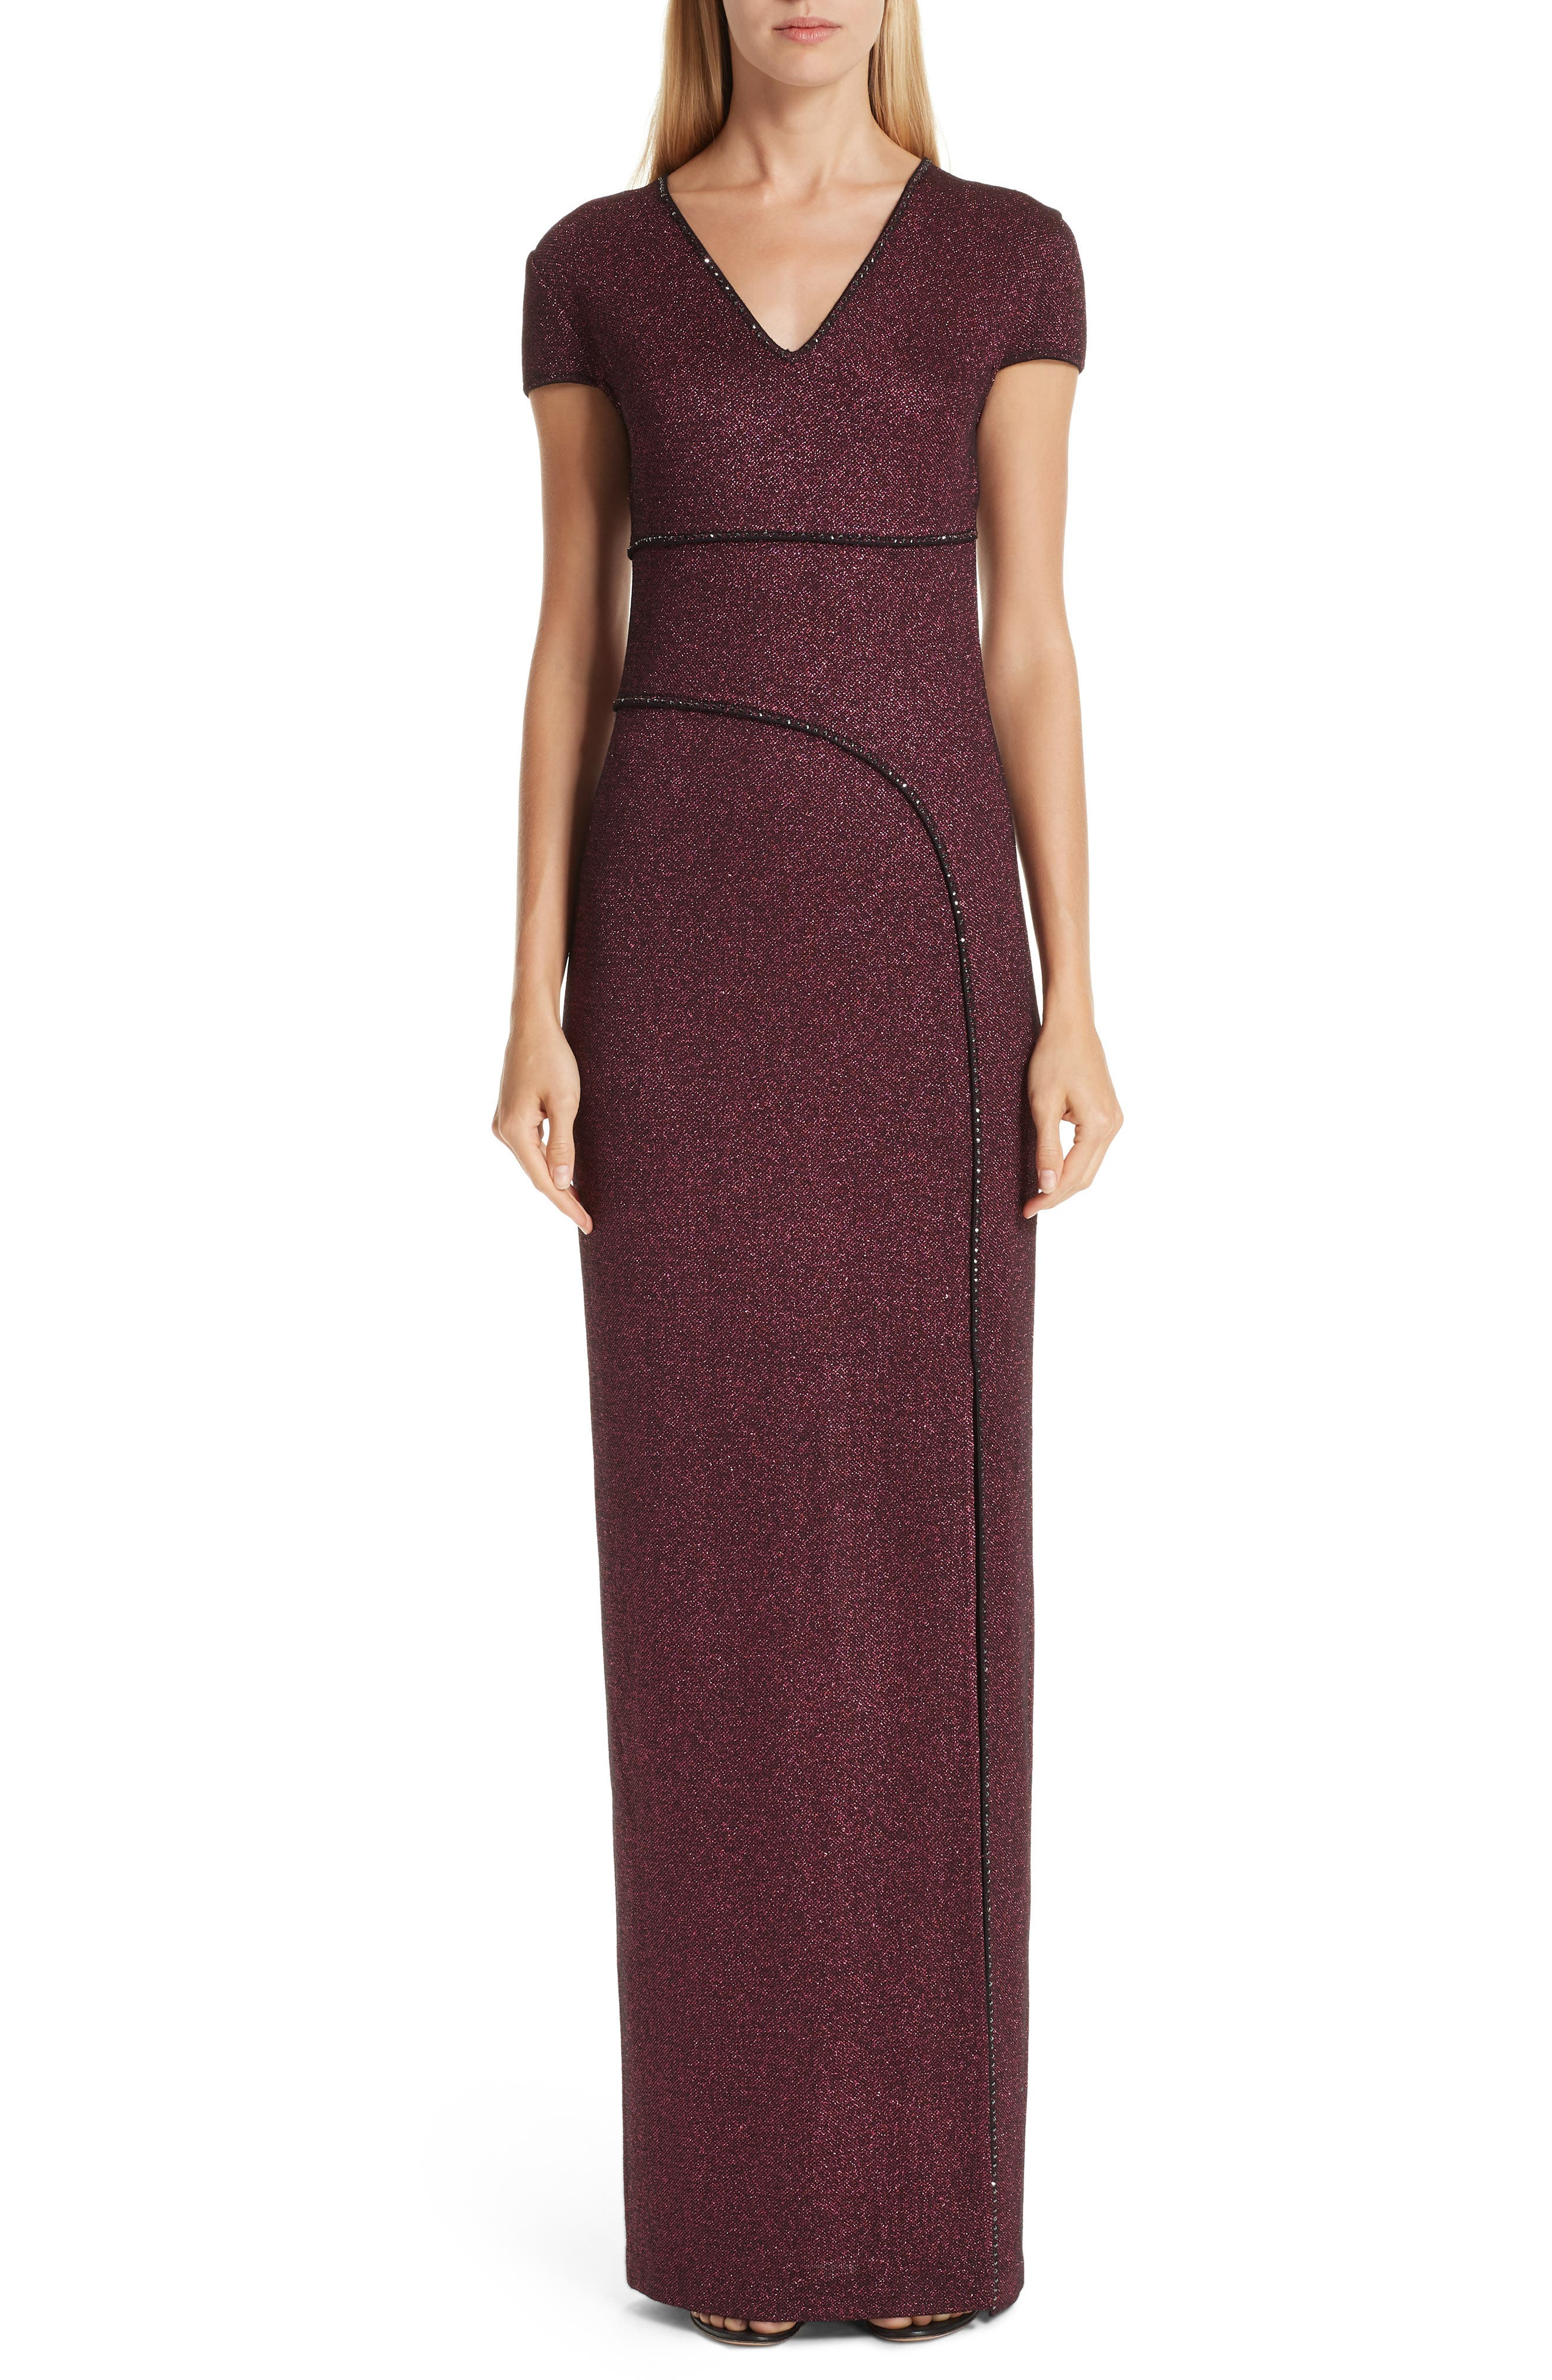 ST. JOHN COLLECTION Mod Metallic Knit Gown, Main, color, DARK PINK MULTI